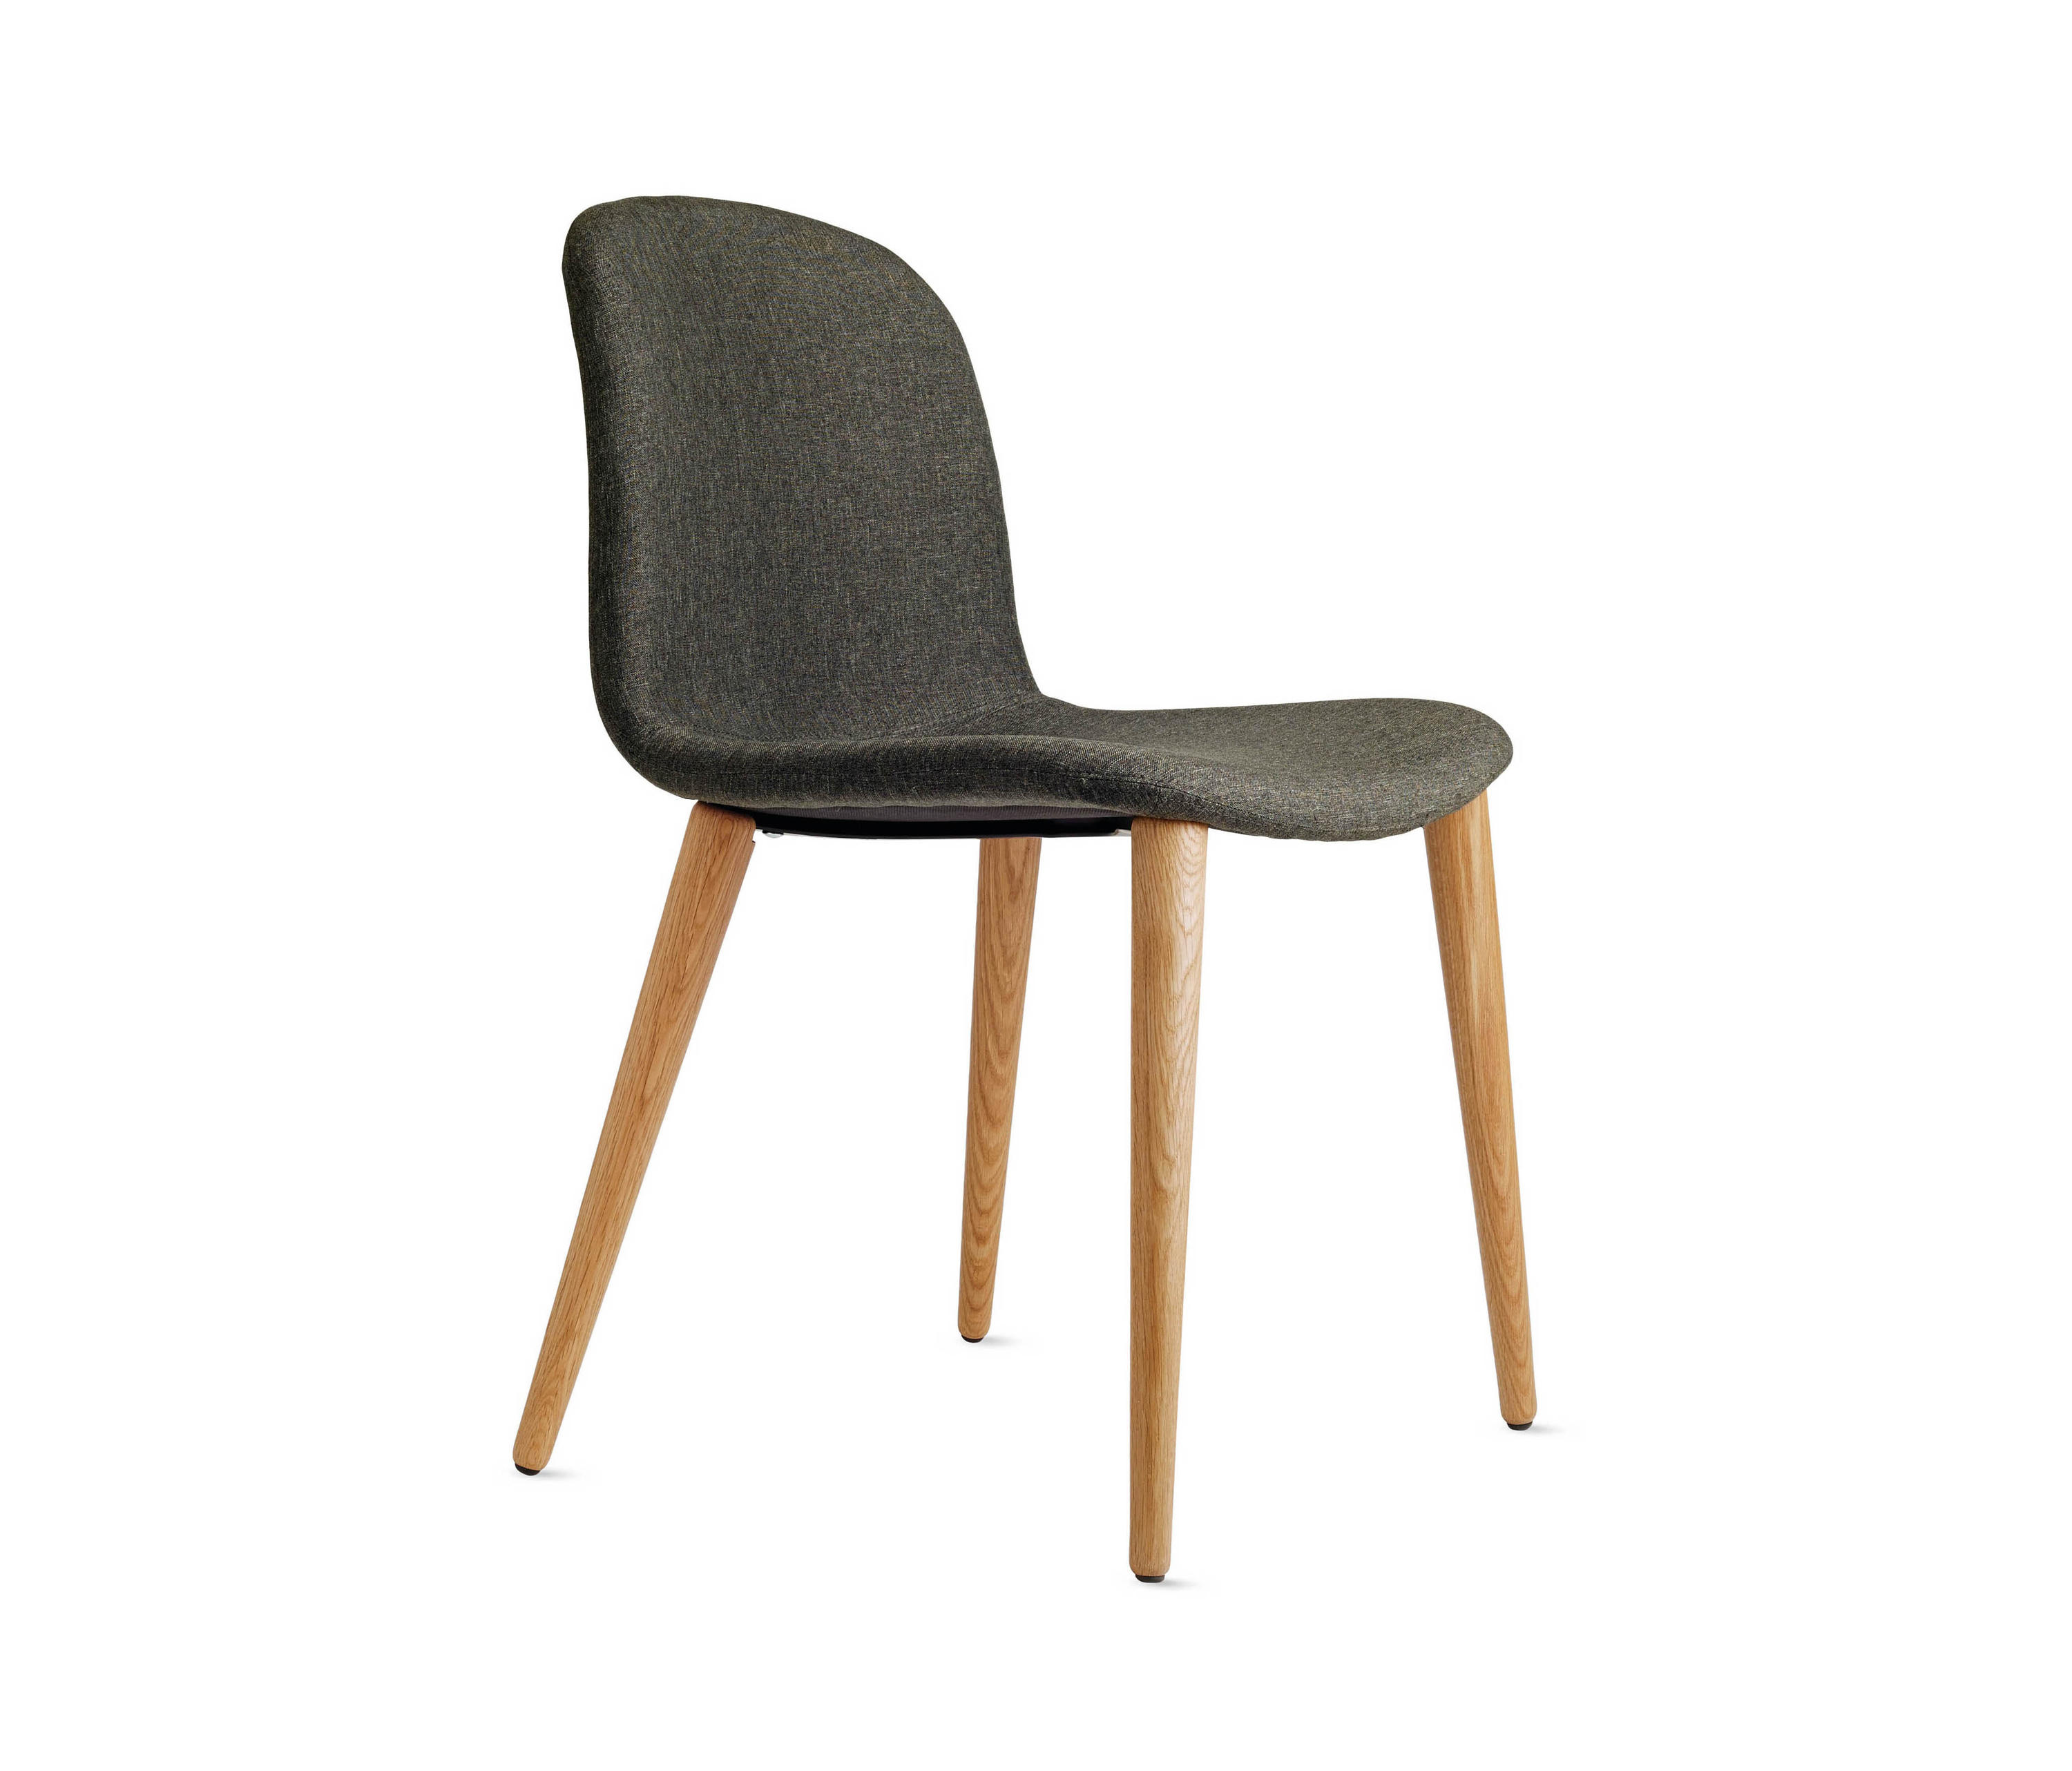 Ordinaire ... Bacco Chair In Fabric | Oak Legs By Design Within Reach | Chairs ...